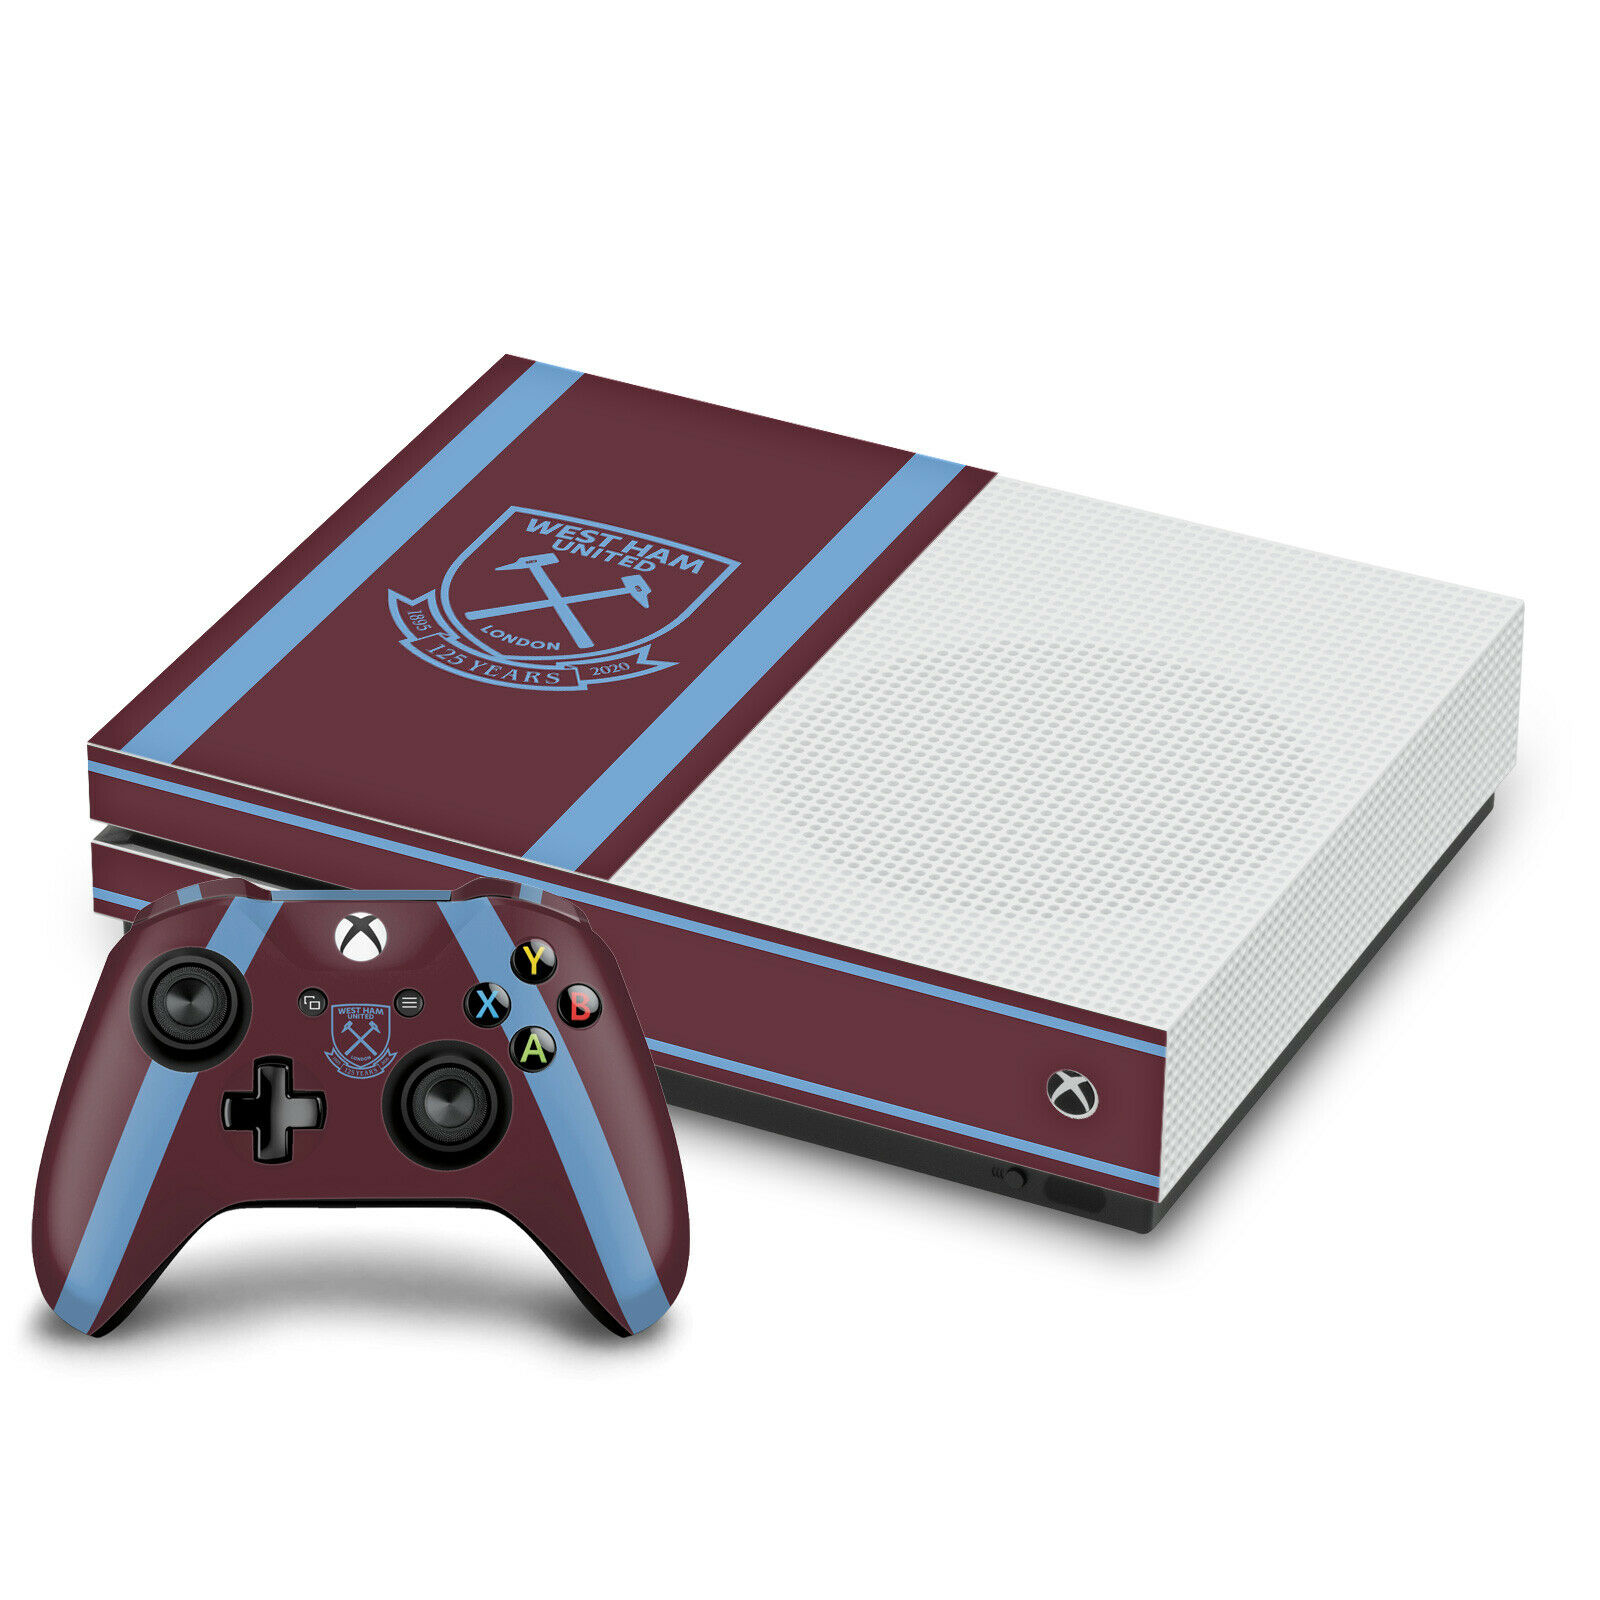 WEST HAM UNITED FC 2020/21 HOME KIT SKIN DECAL FOR ONE S CONSOLE & CONTROLLER